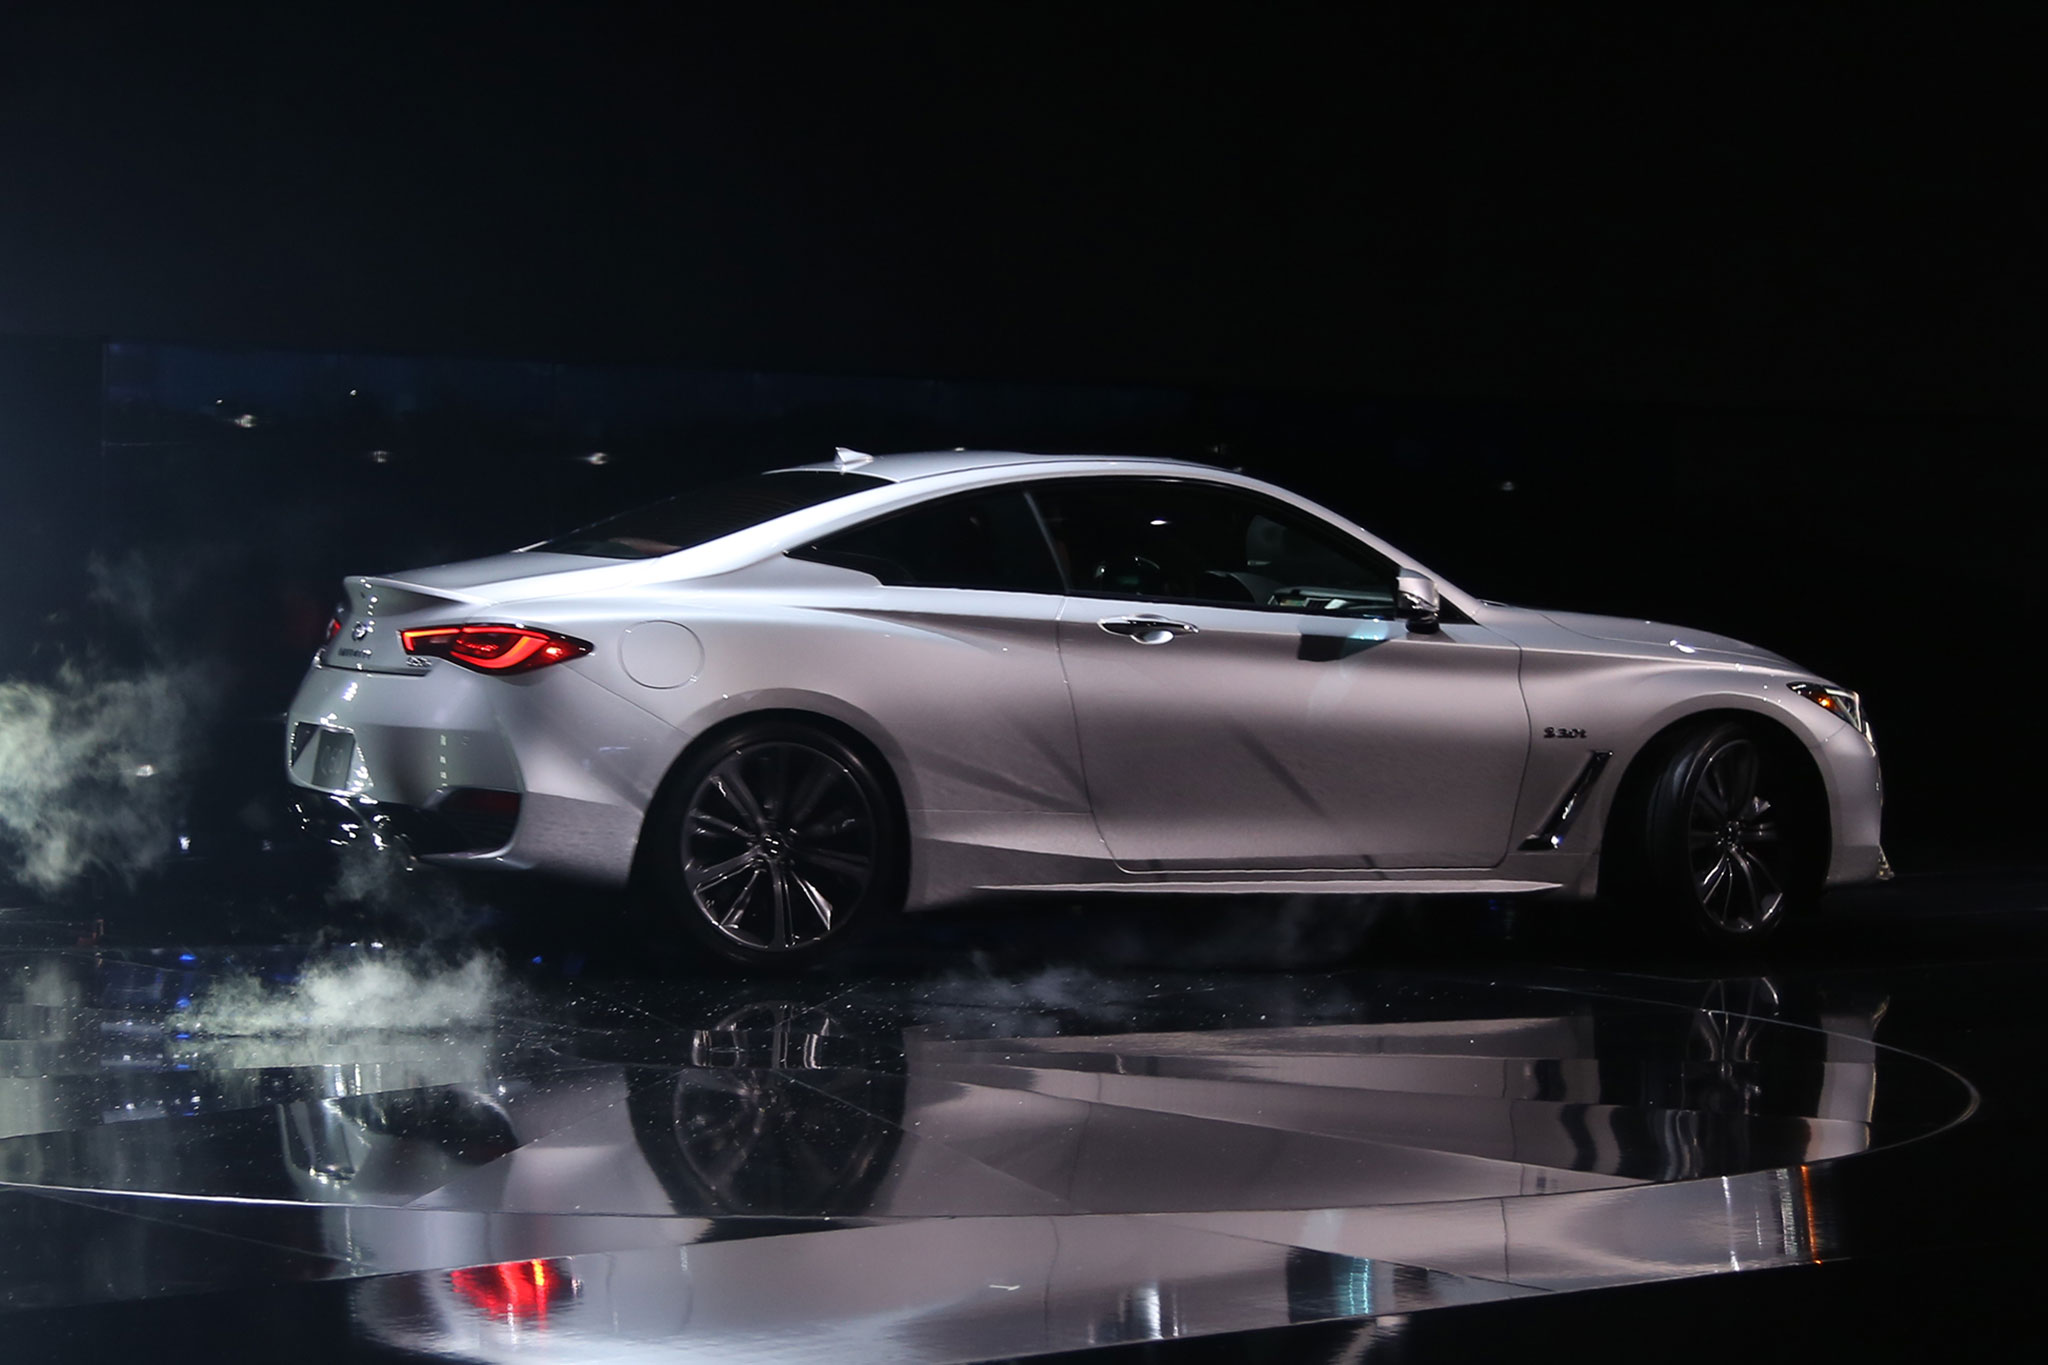 2017 Infiniti Q60 Side Profile 03